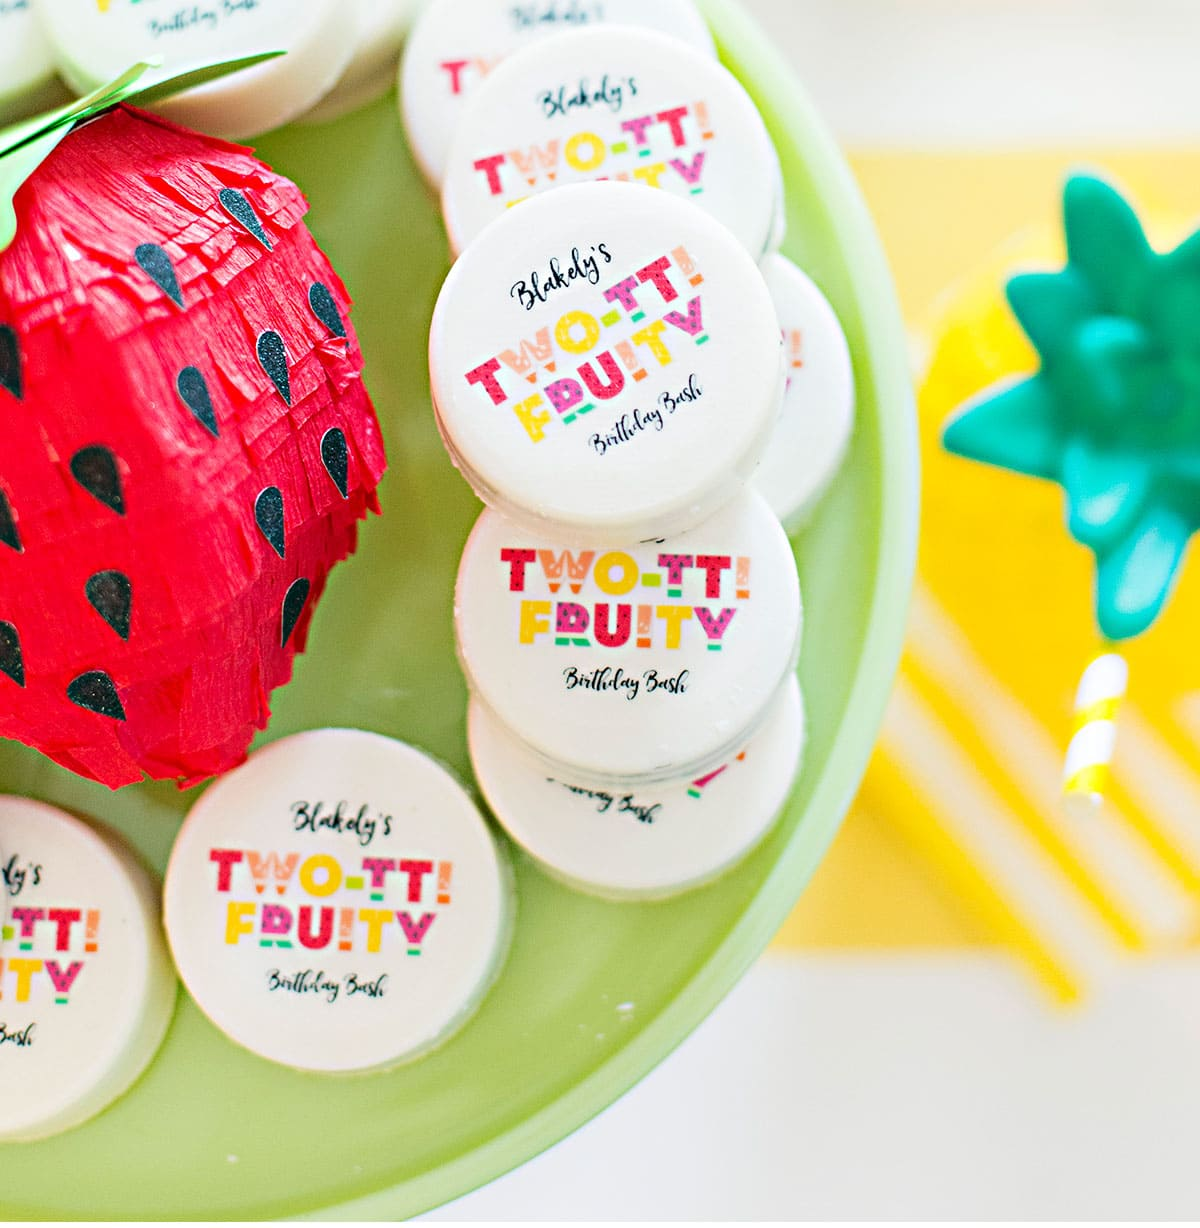 Personalized Oreos for a Two-tti Fruity Birthday Party!